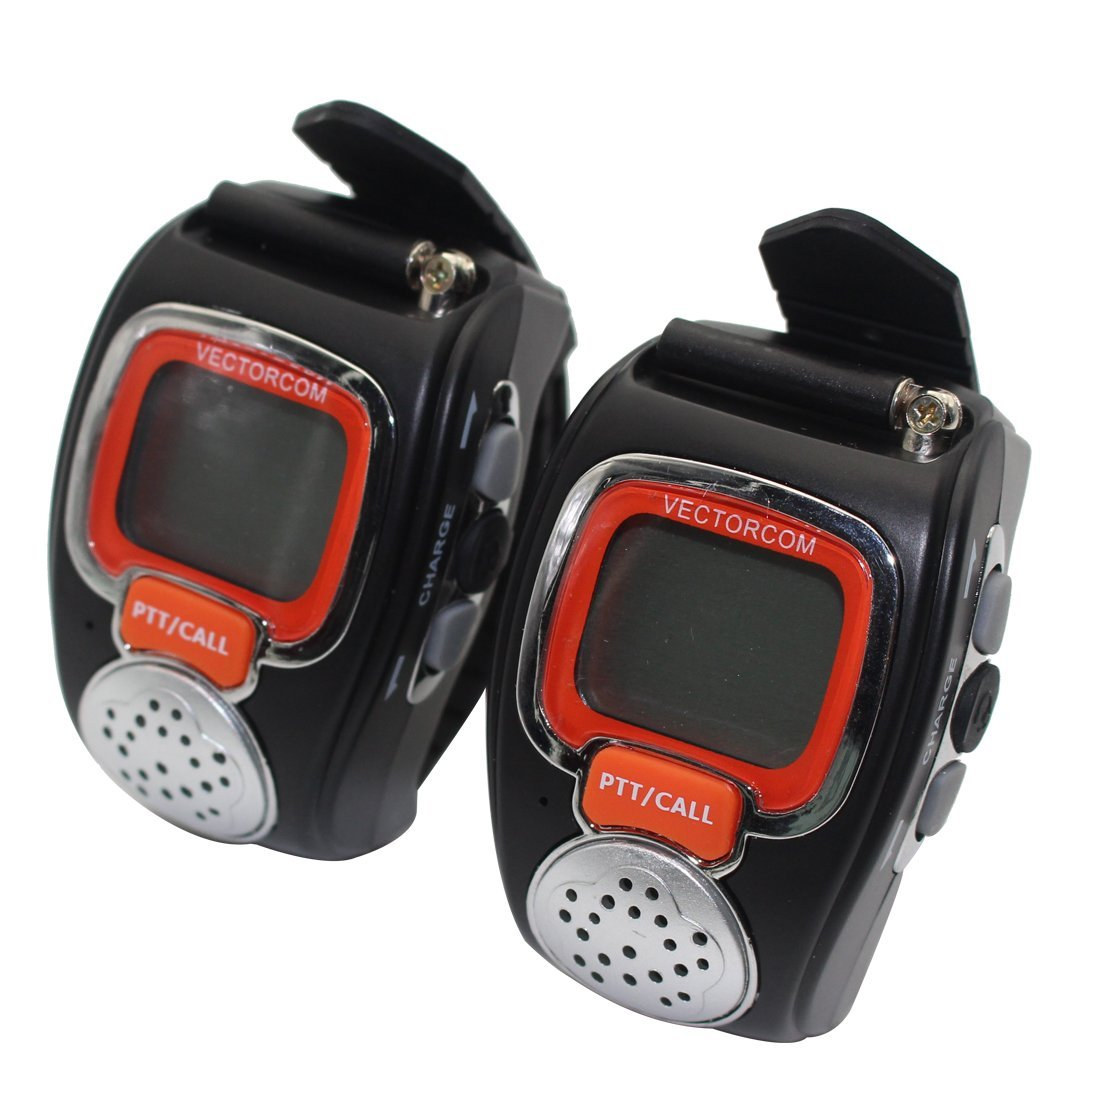 VECTORCOM Portable Digital Wrist Watch Walkie Talkie Two_...